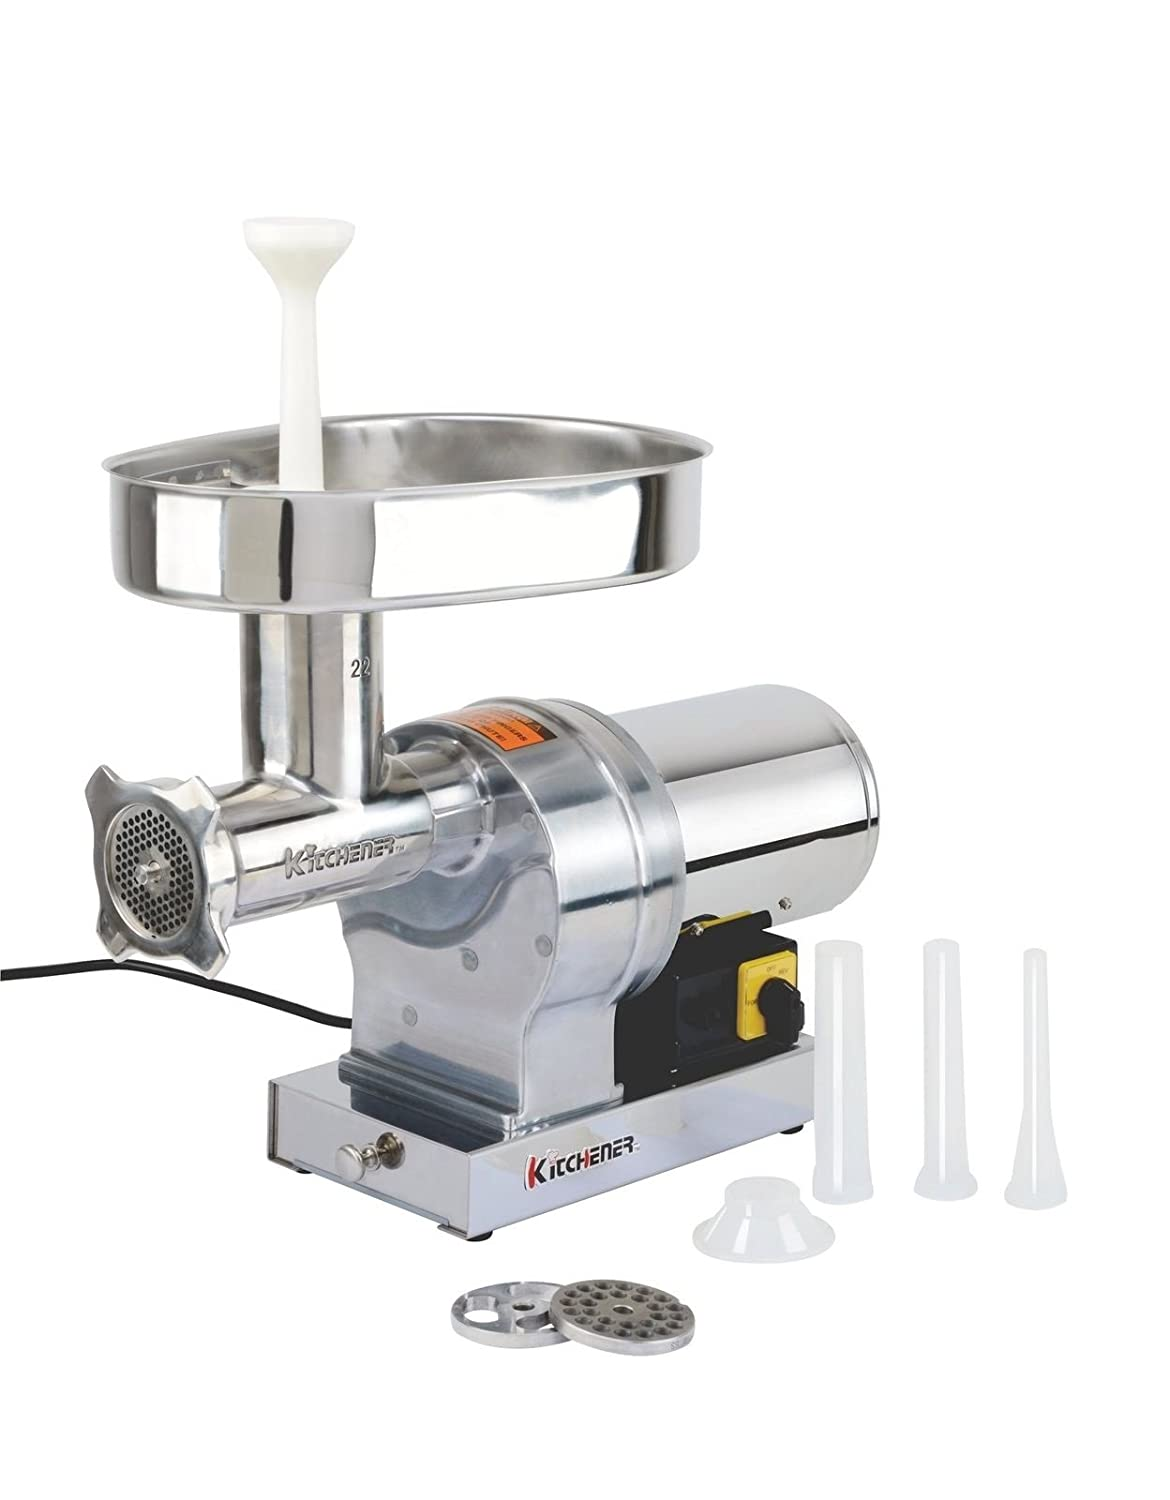 Amazon.com: KITCHENER Heavy Duty Commercial Grade Electric Stainless ...